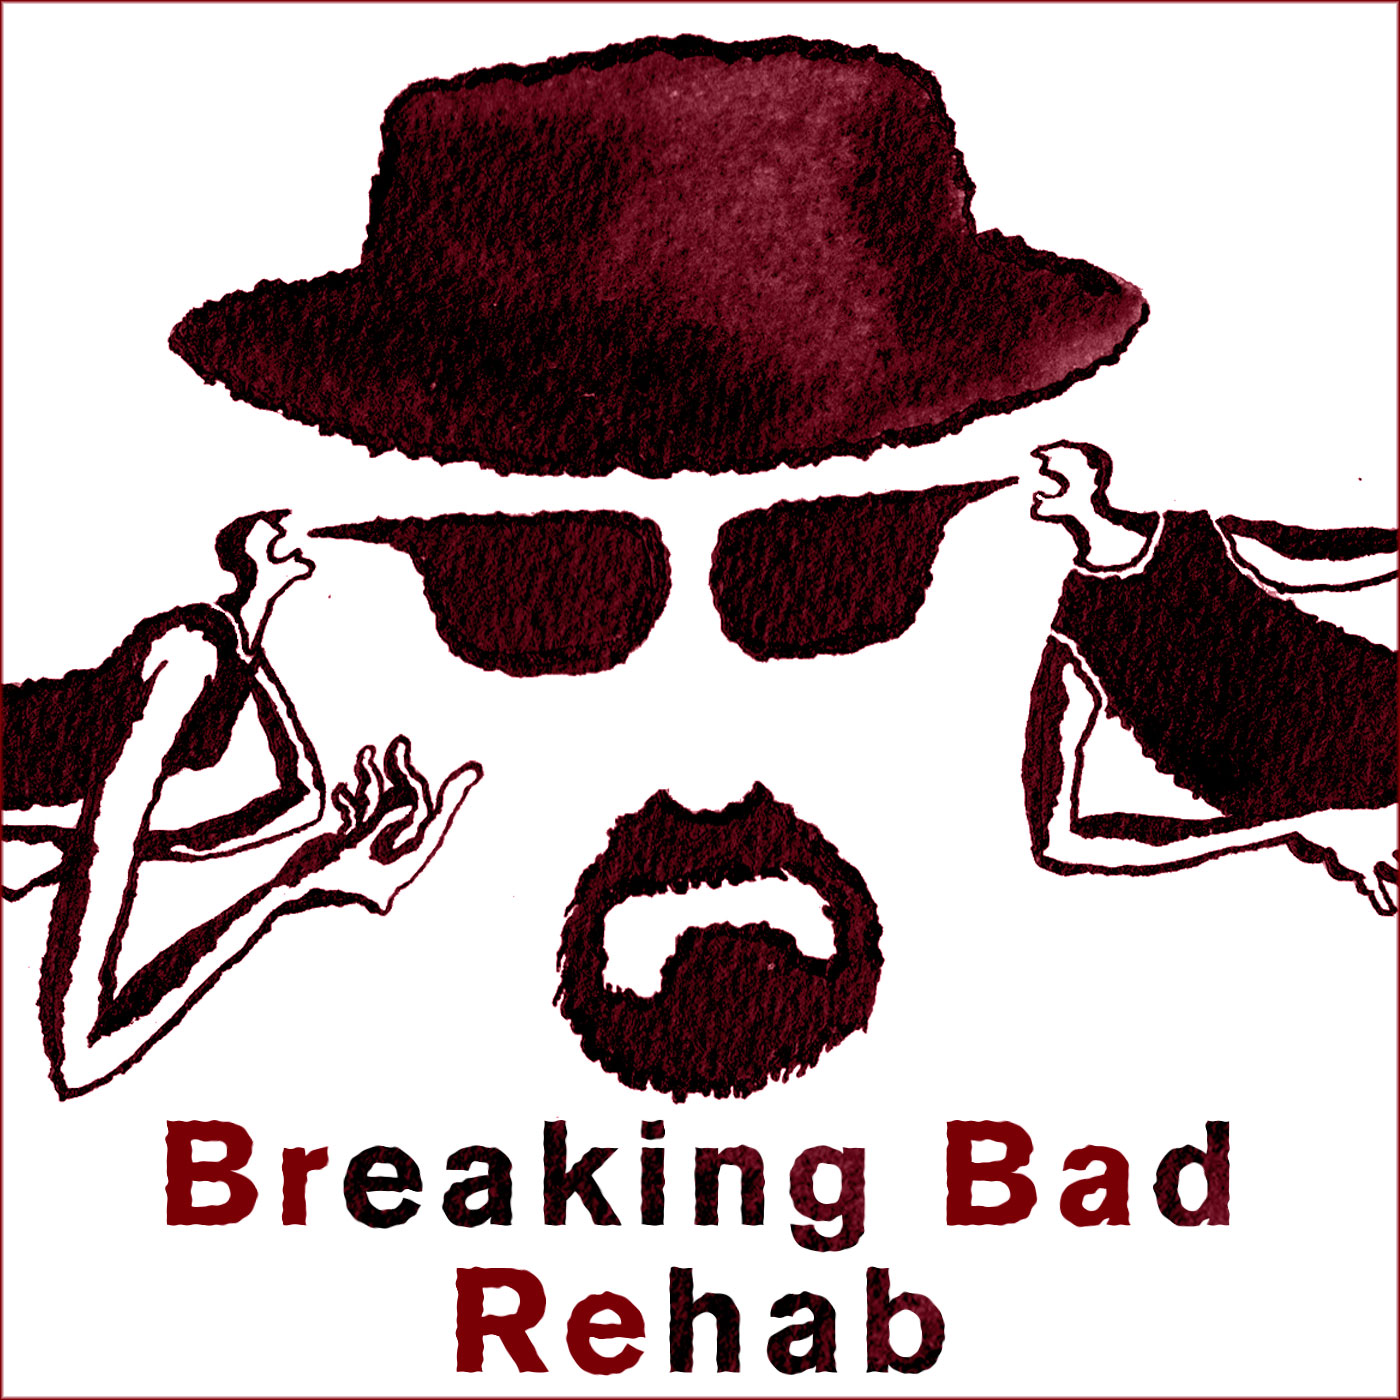 Breaking Bad Rehab